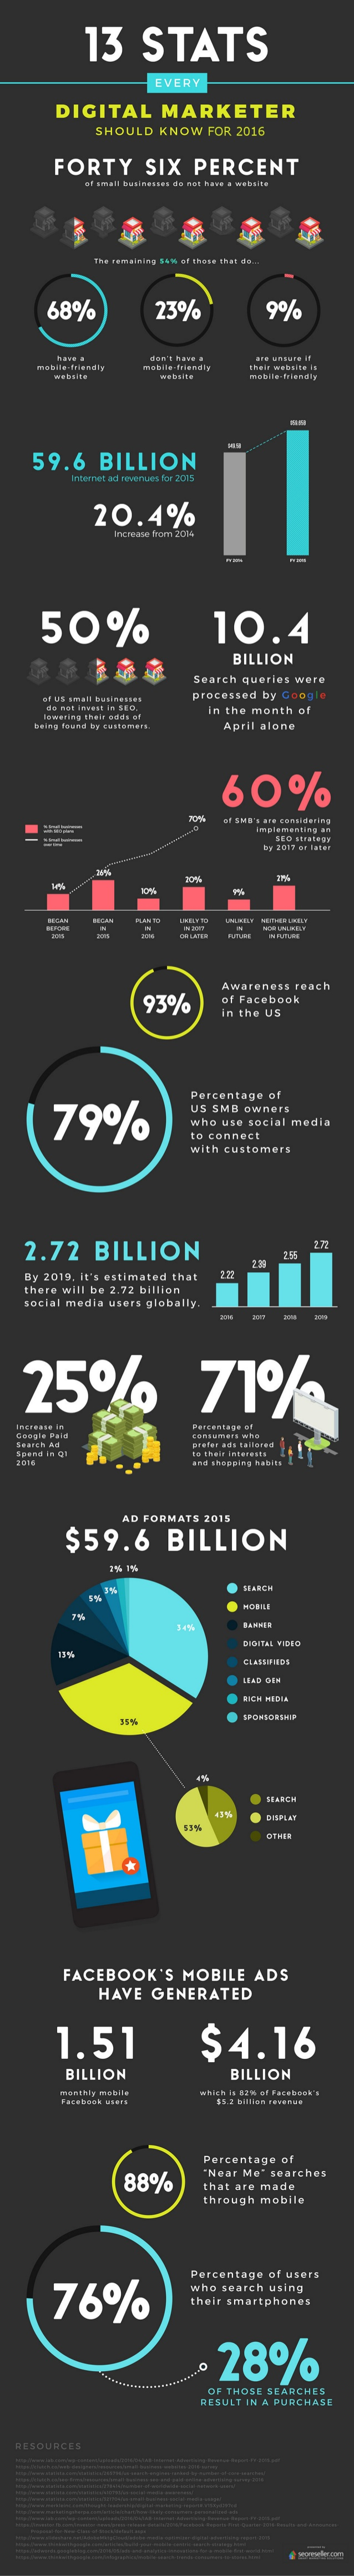 13-stats-every-digital-marketer-should-know-2016-1-638